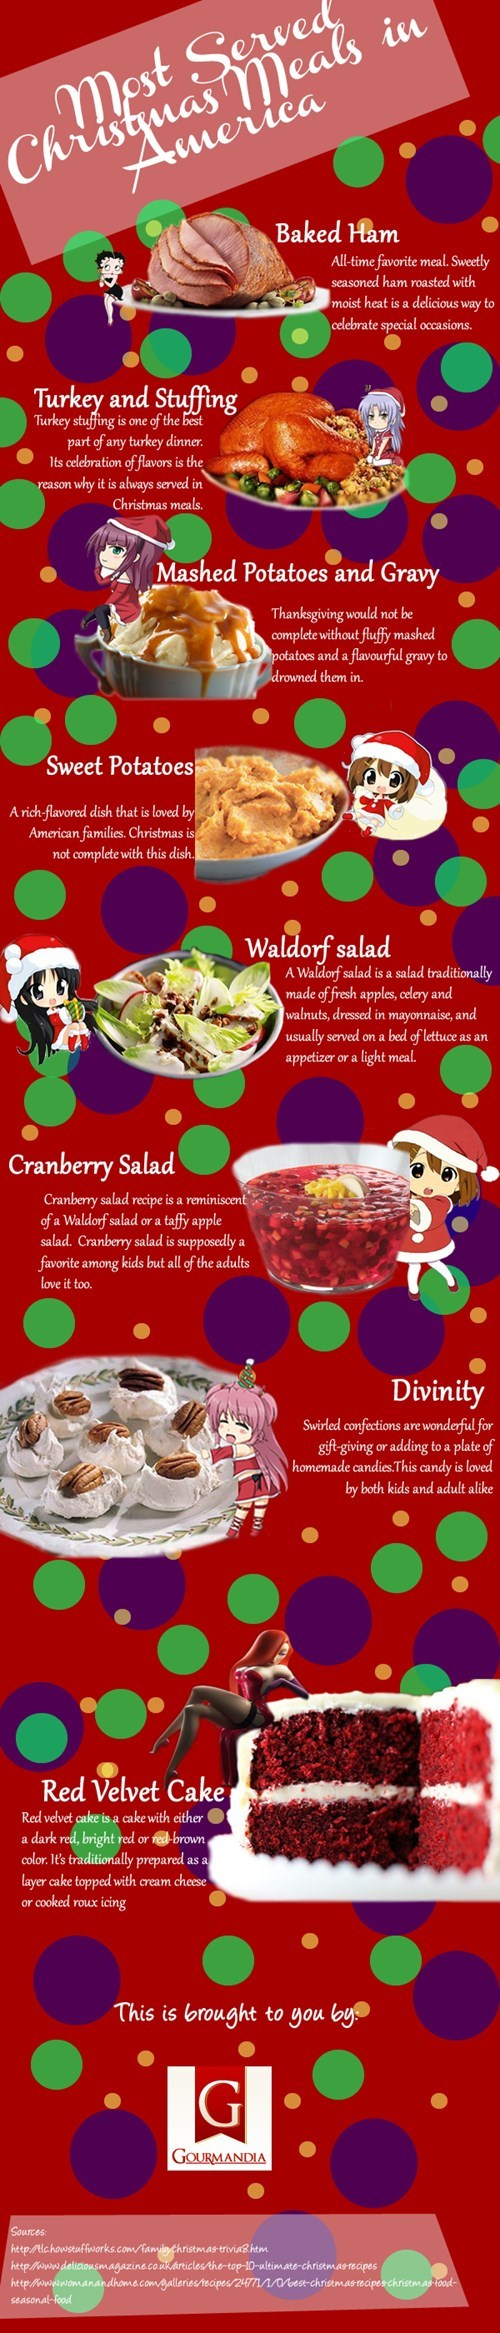 americans,food,christmas,infographic